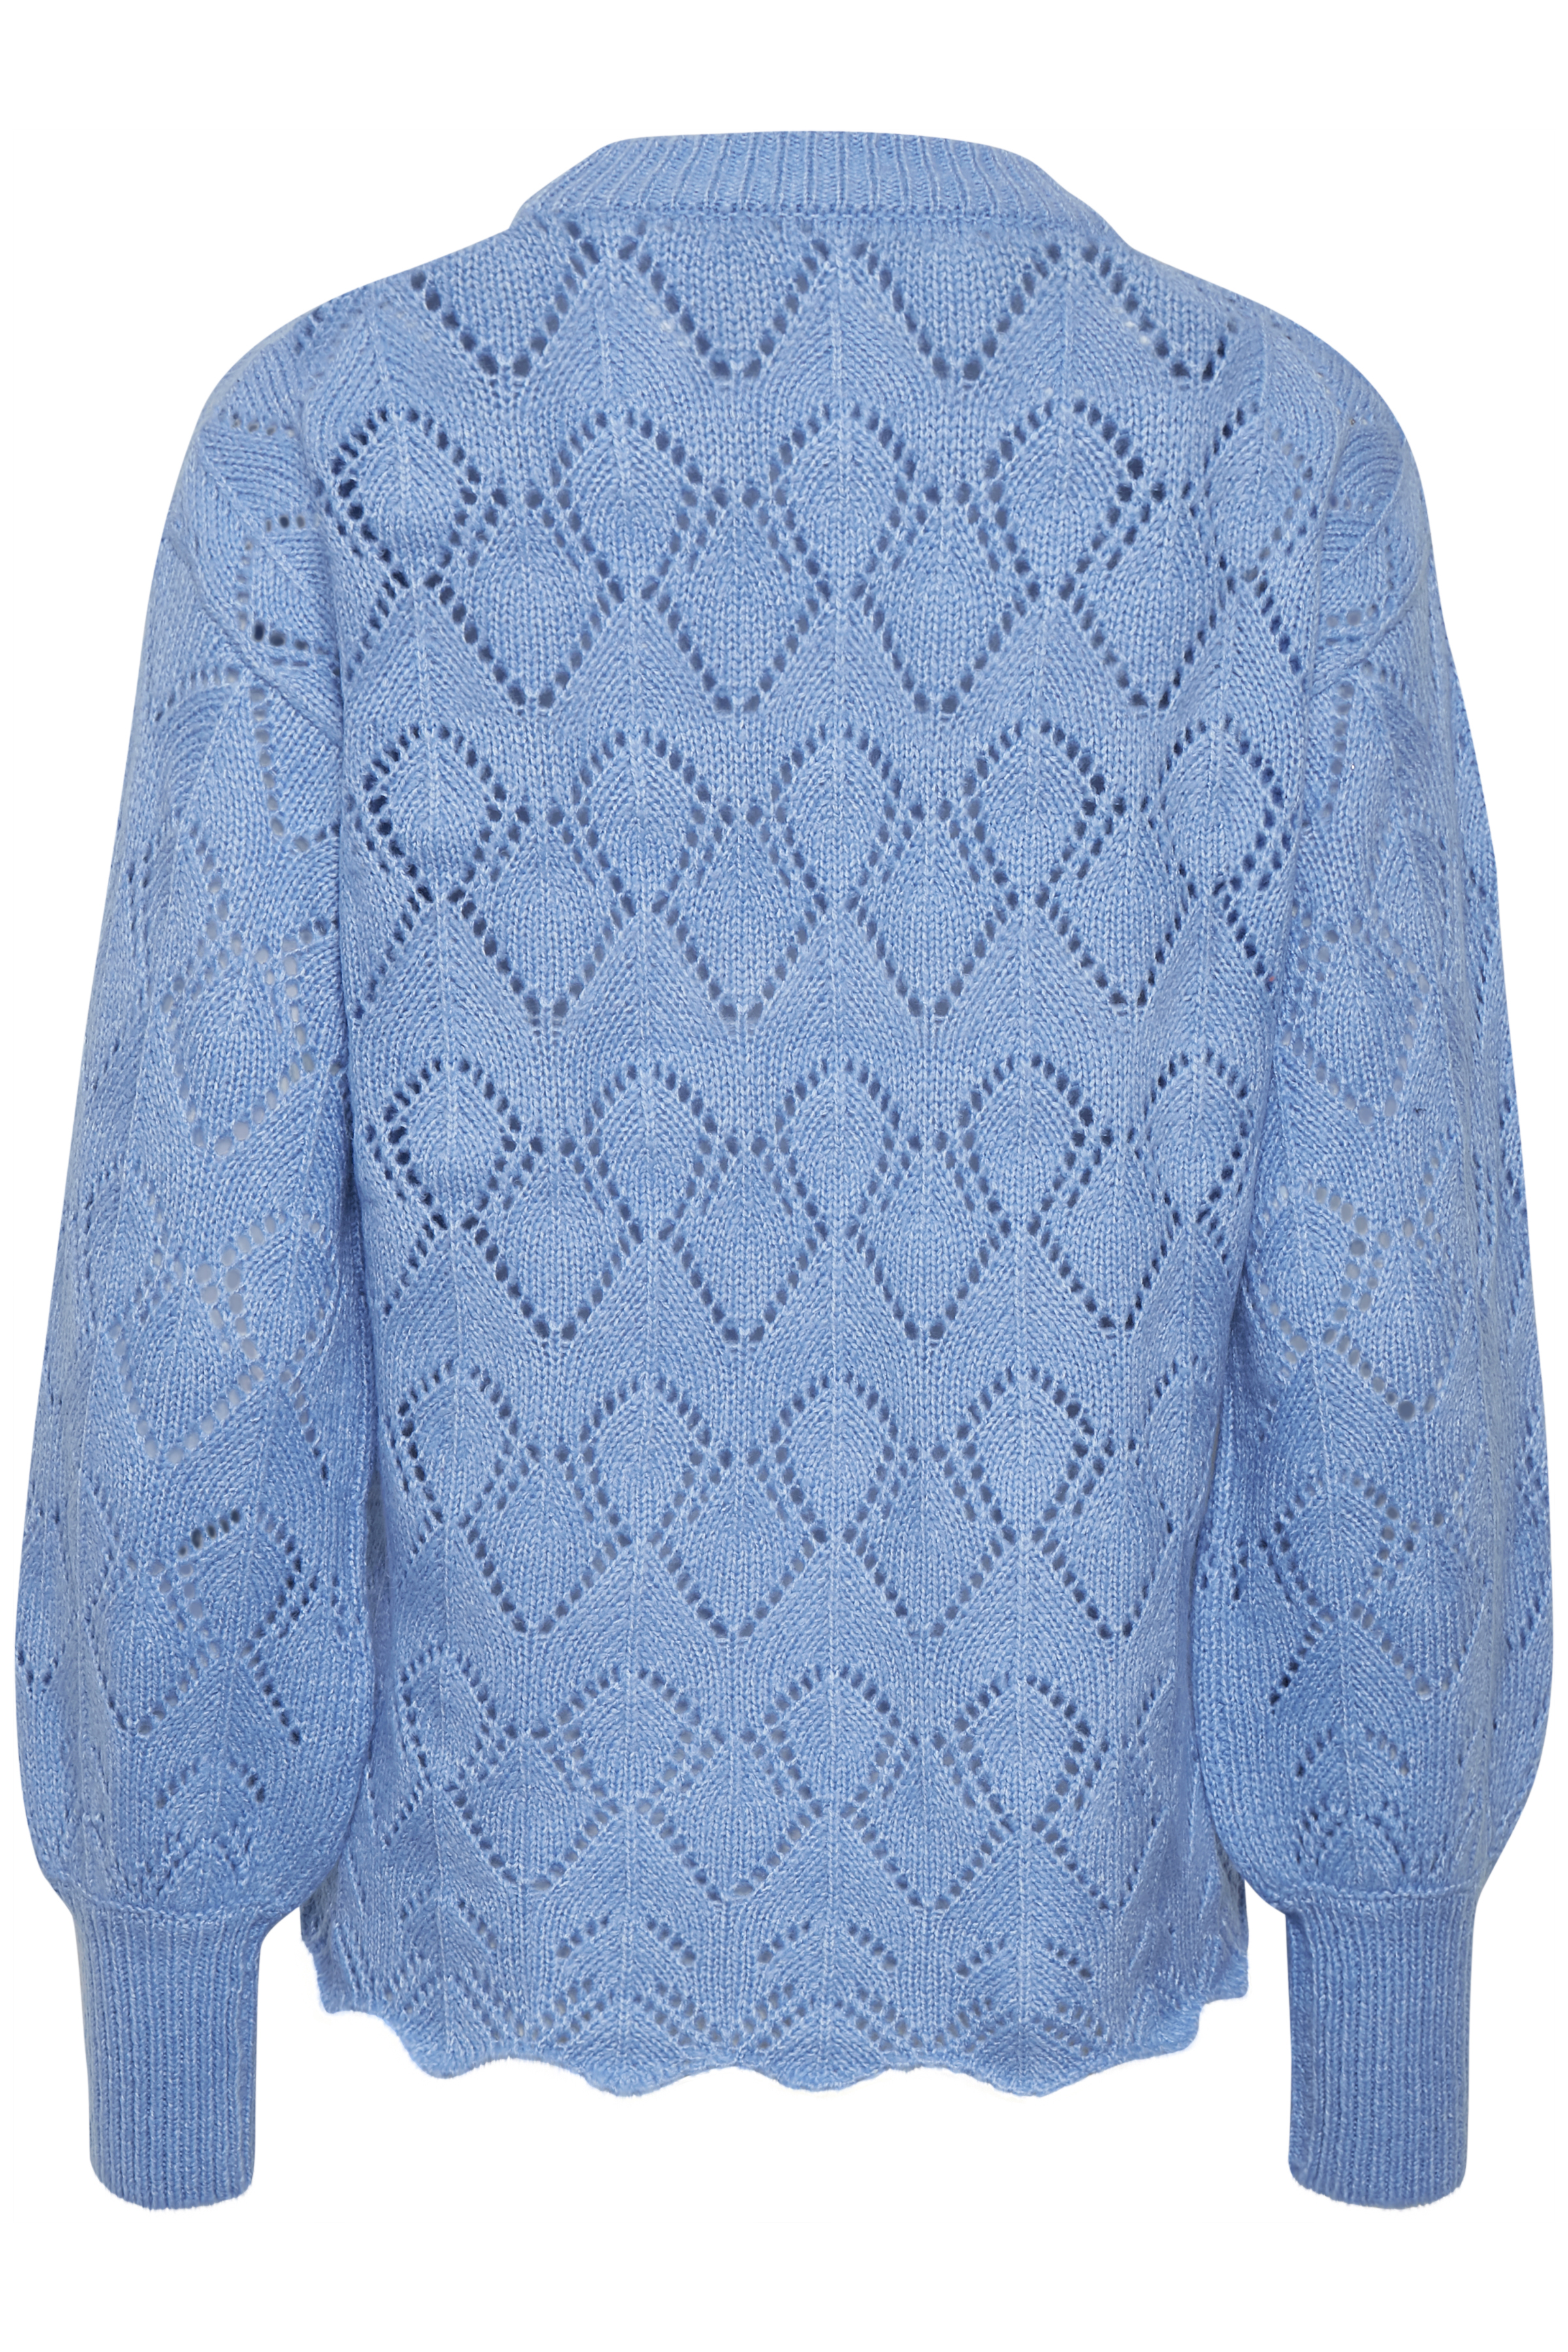 Cornflower Blue Mel. Knitted pullover from b.young – Buy Cornflower Blue Mel. Knitted pullover from size XS-XXL here